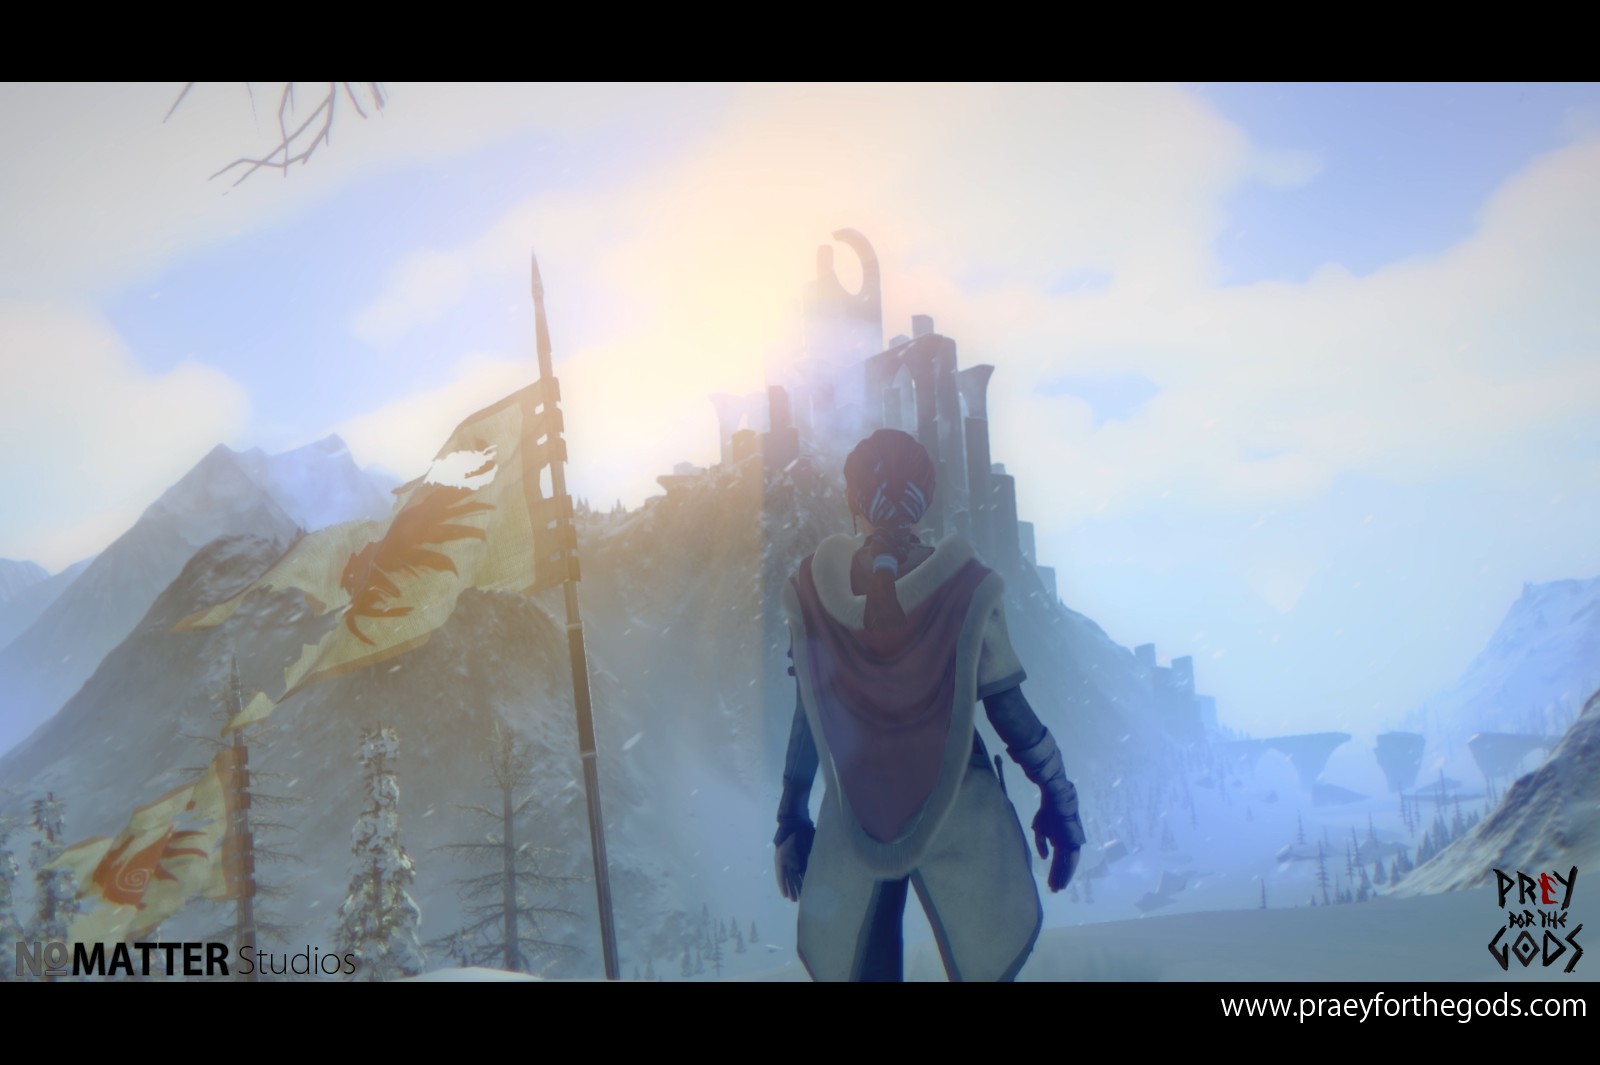 A third-person view of the game's protagonist looking toward a towering structure in the distance.